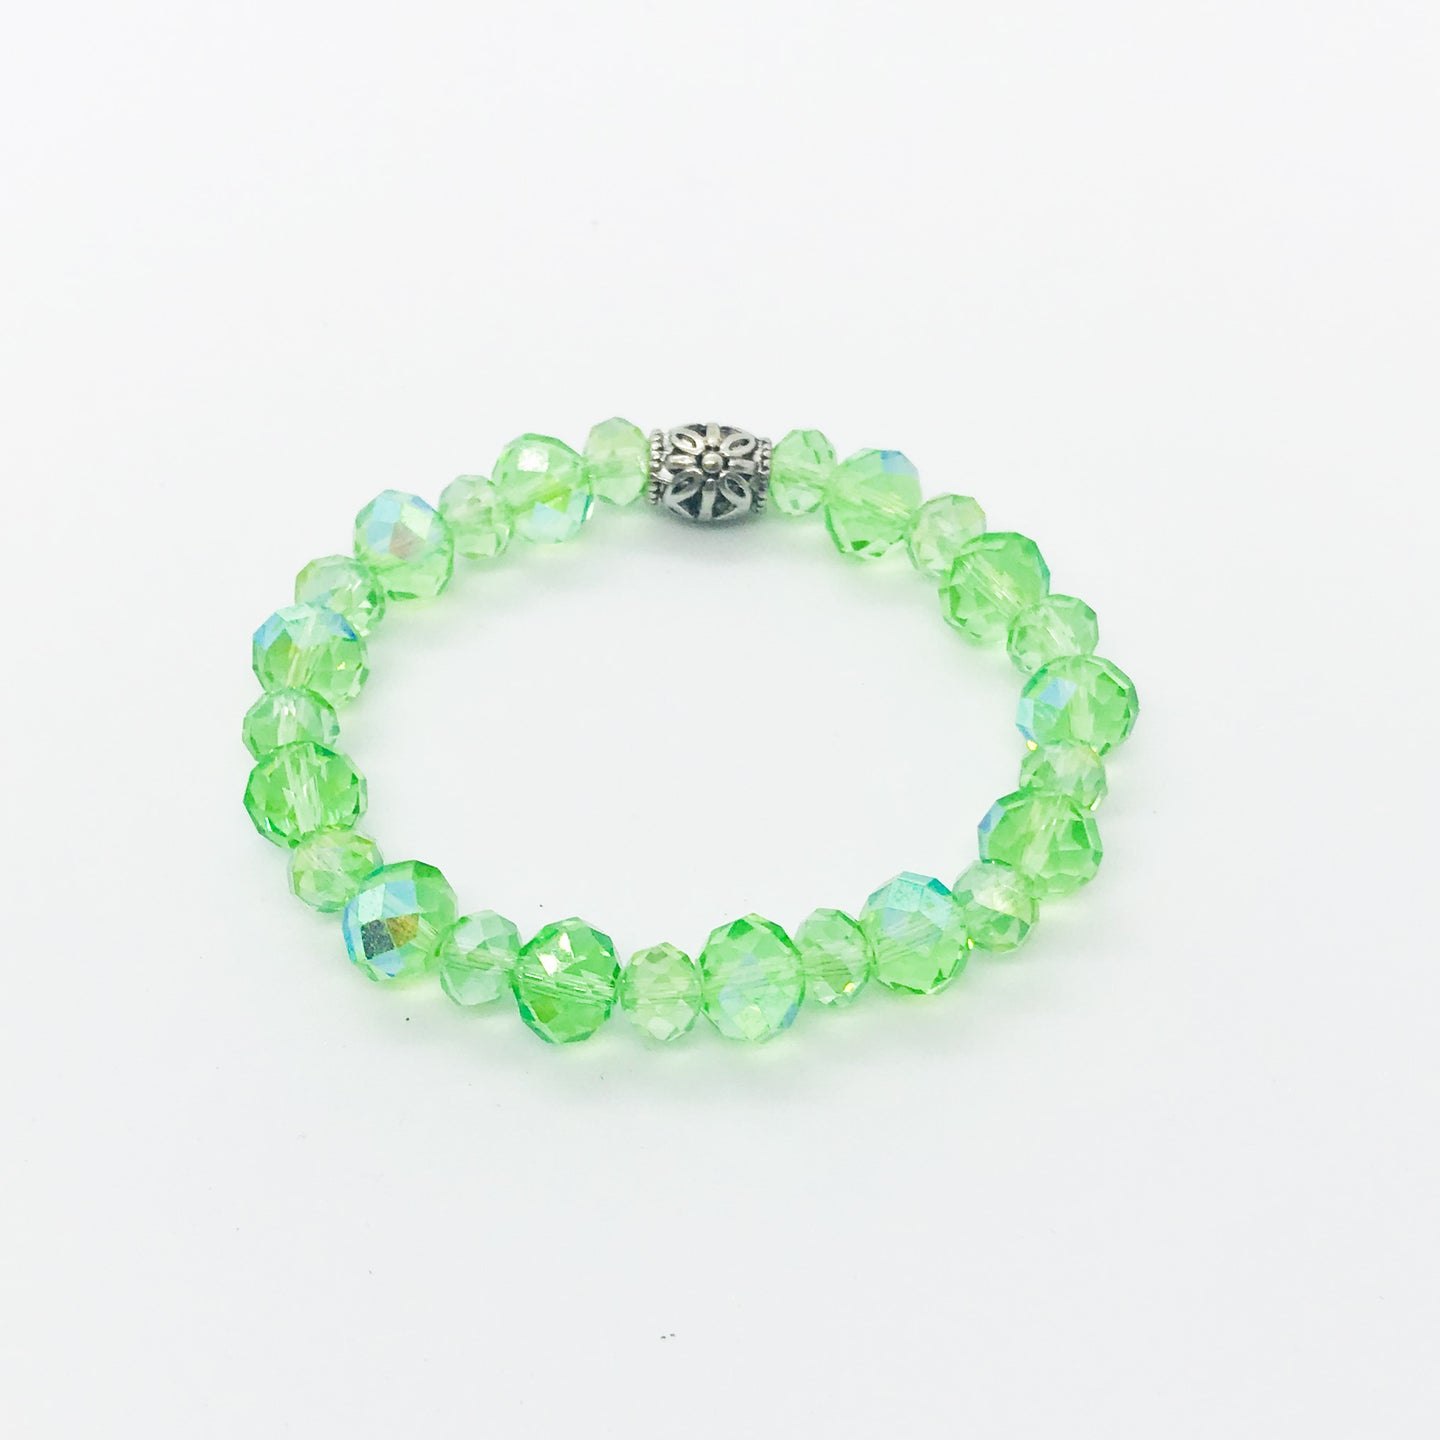 Glass Bead Stretchy Bracelet - B819